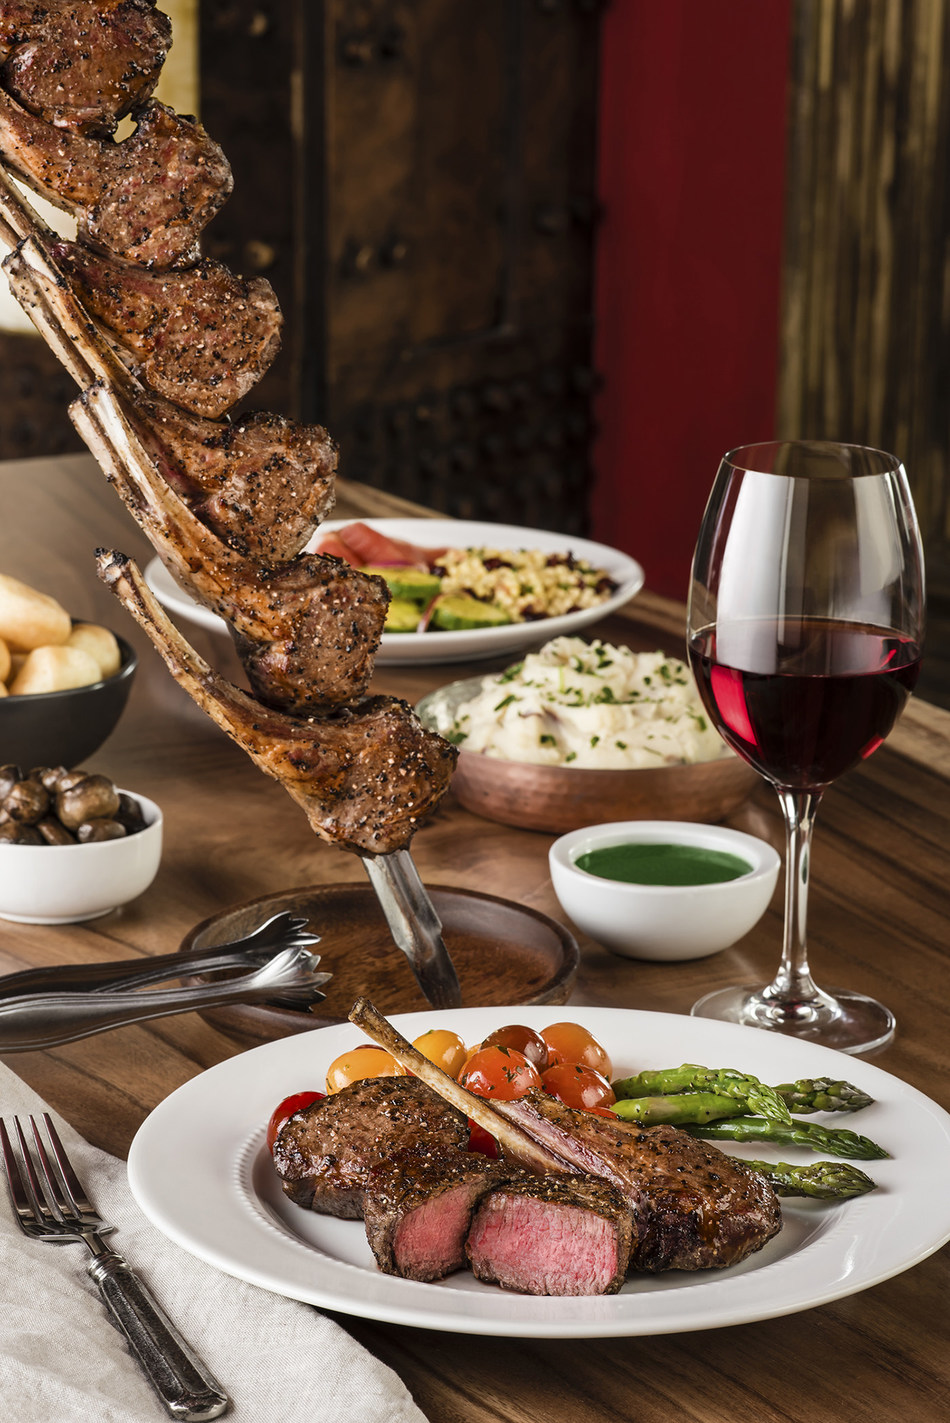 Texas de Brazil Churrascaria features incredible meats grilled over an open fire, an extravagant salad area with over 50 items made fresh daily, and an award-winning wine list.